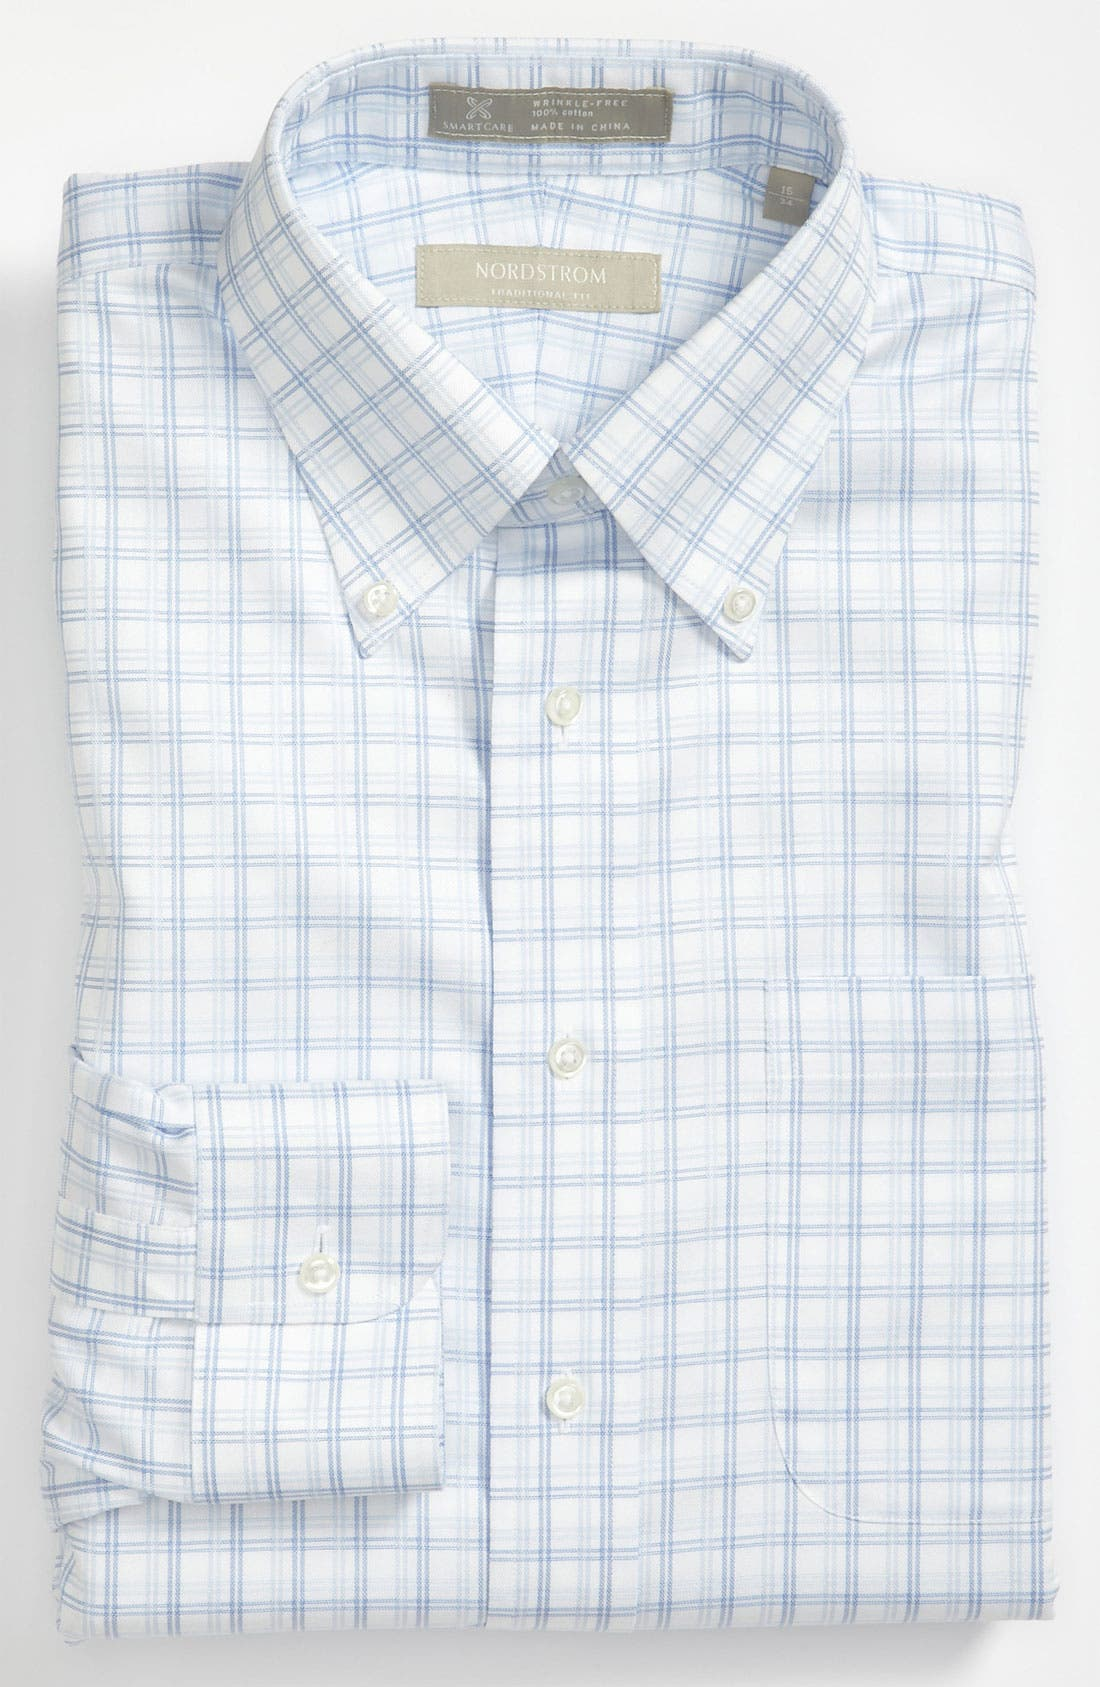 Alternate Image 1 Selected - Nordstrom Smartcare™ Traditional Fit Dress Shirt